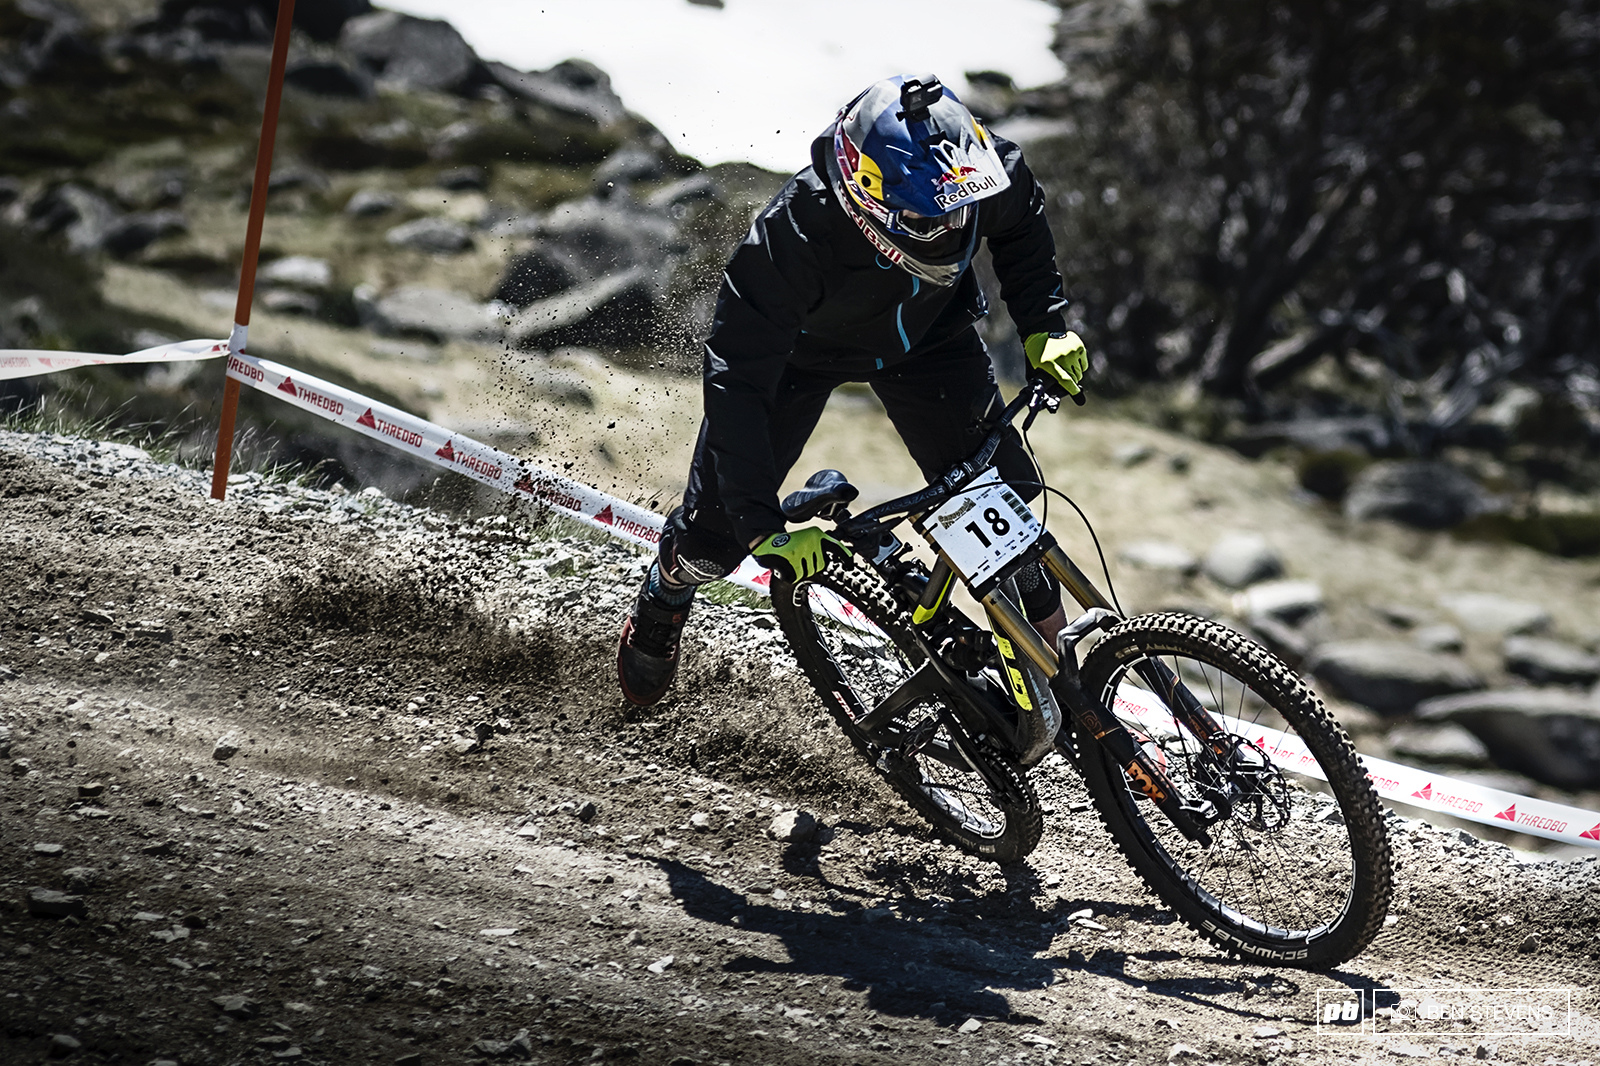 Brook MacDonald enjoyed tearing up the Australian trails. Unfortunately he got a front flat in his race run taking away his chances of a podium whilst visiting.